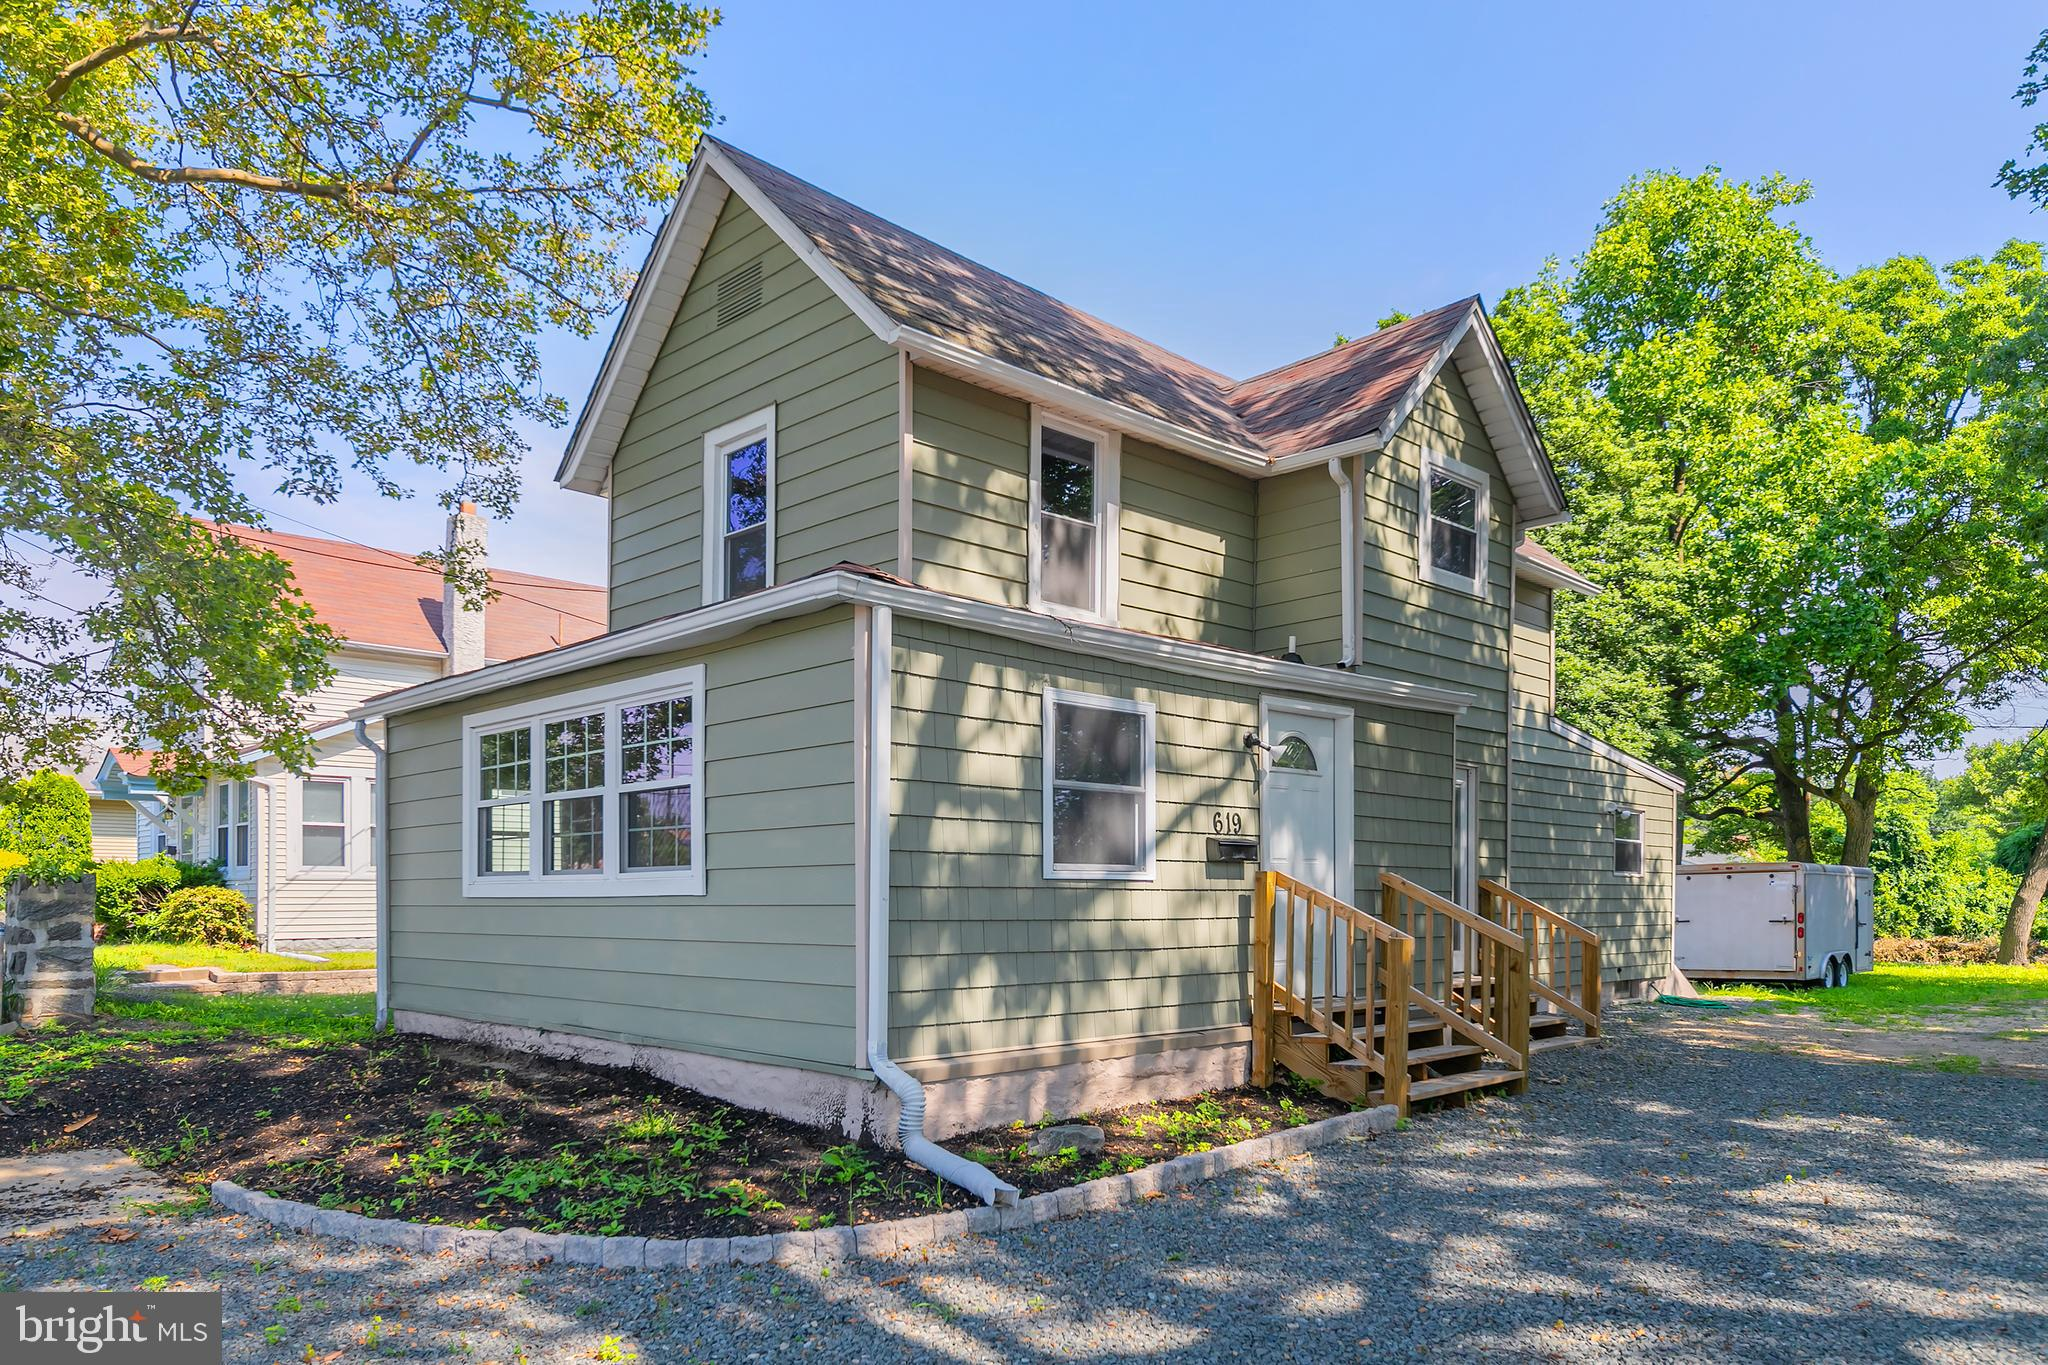 619 HESSIAN AVENUE, NATIONAL PARK, NJ 08063